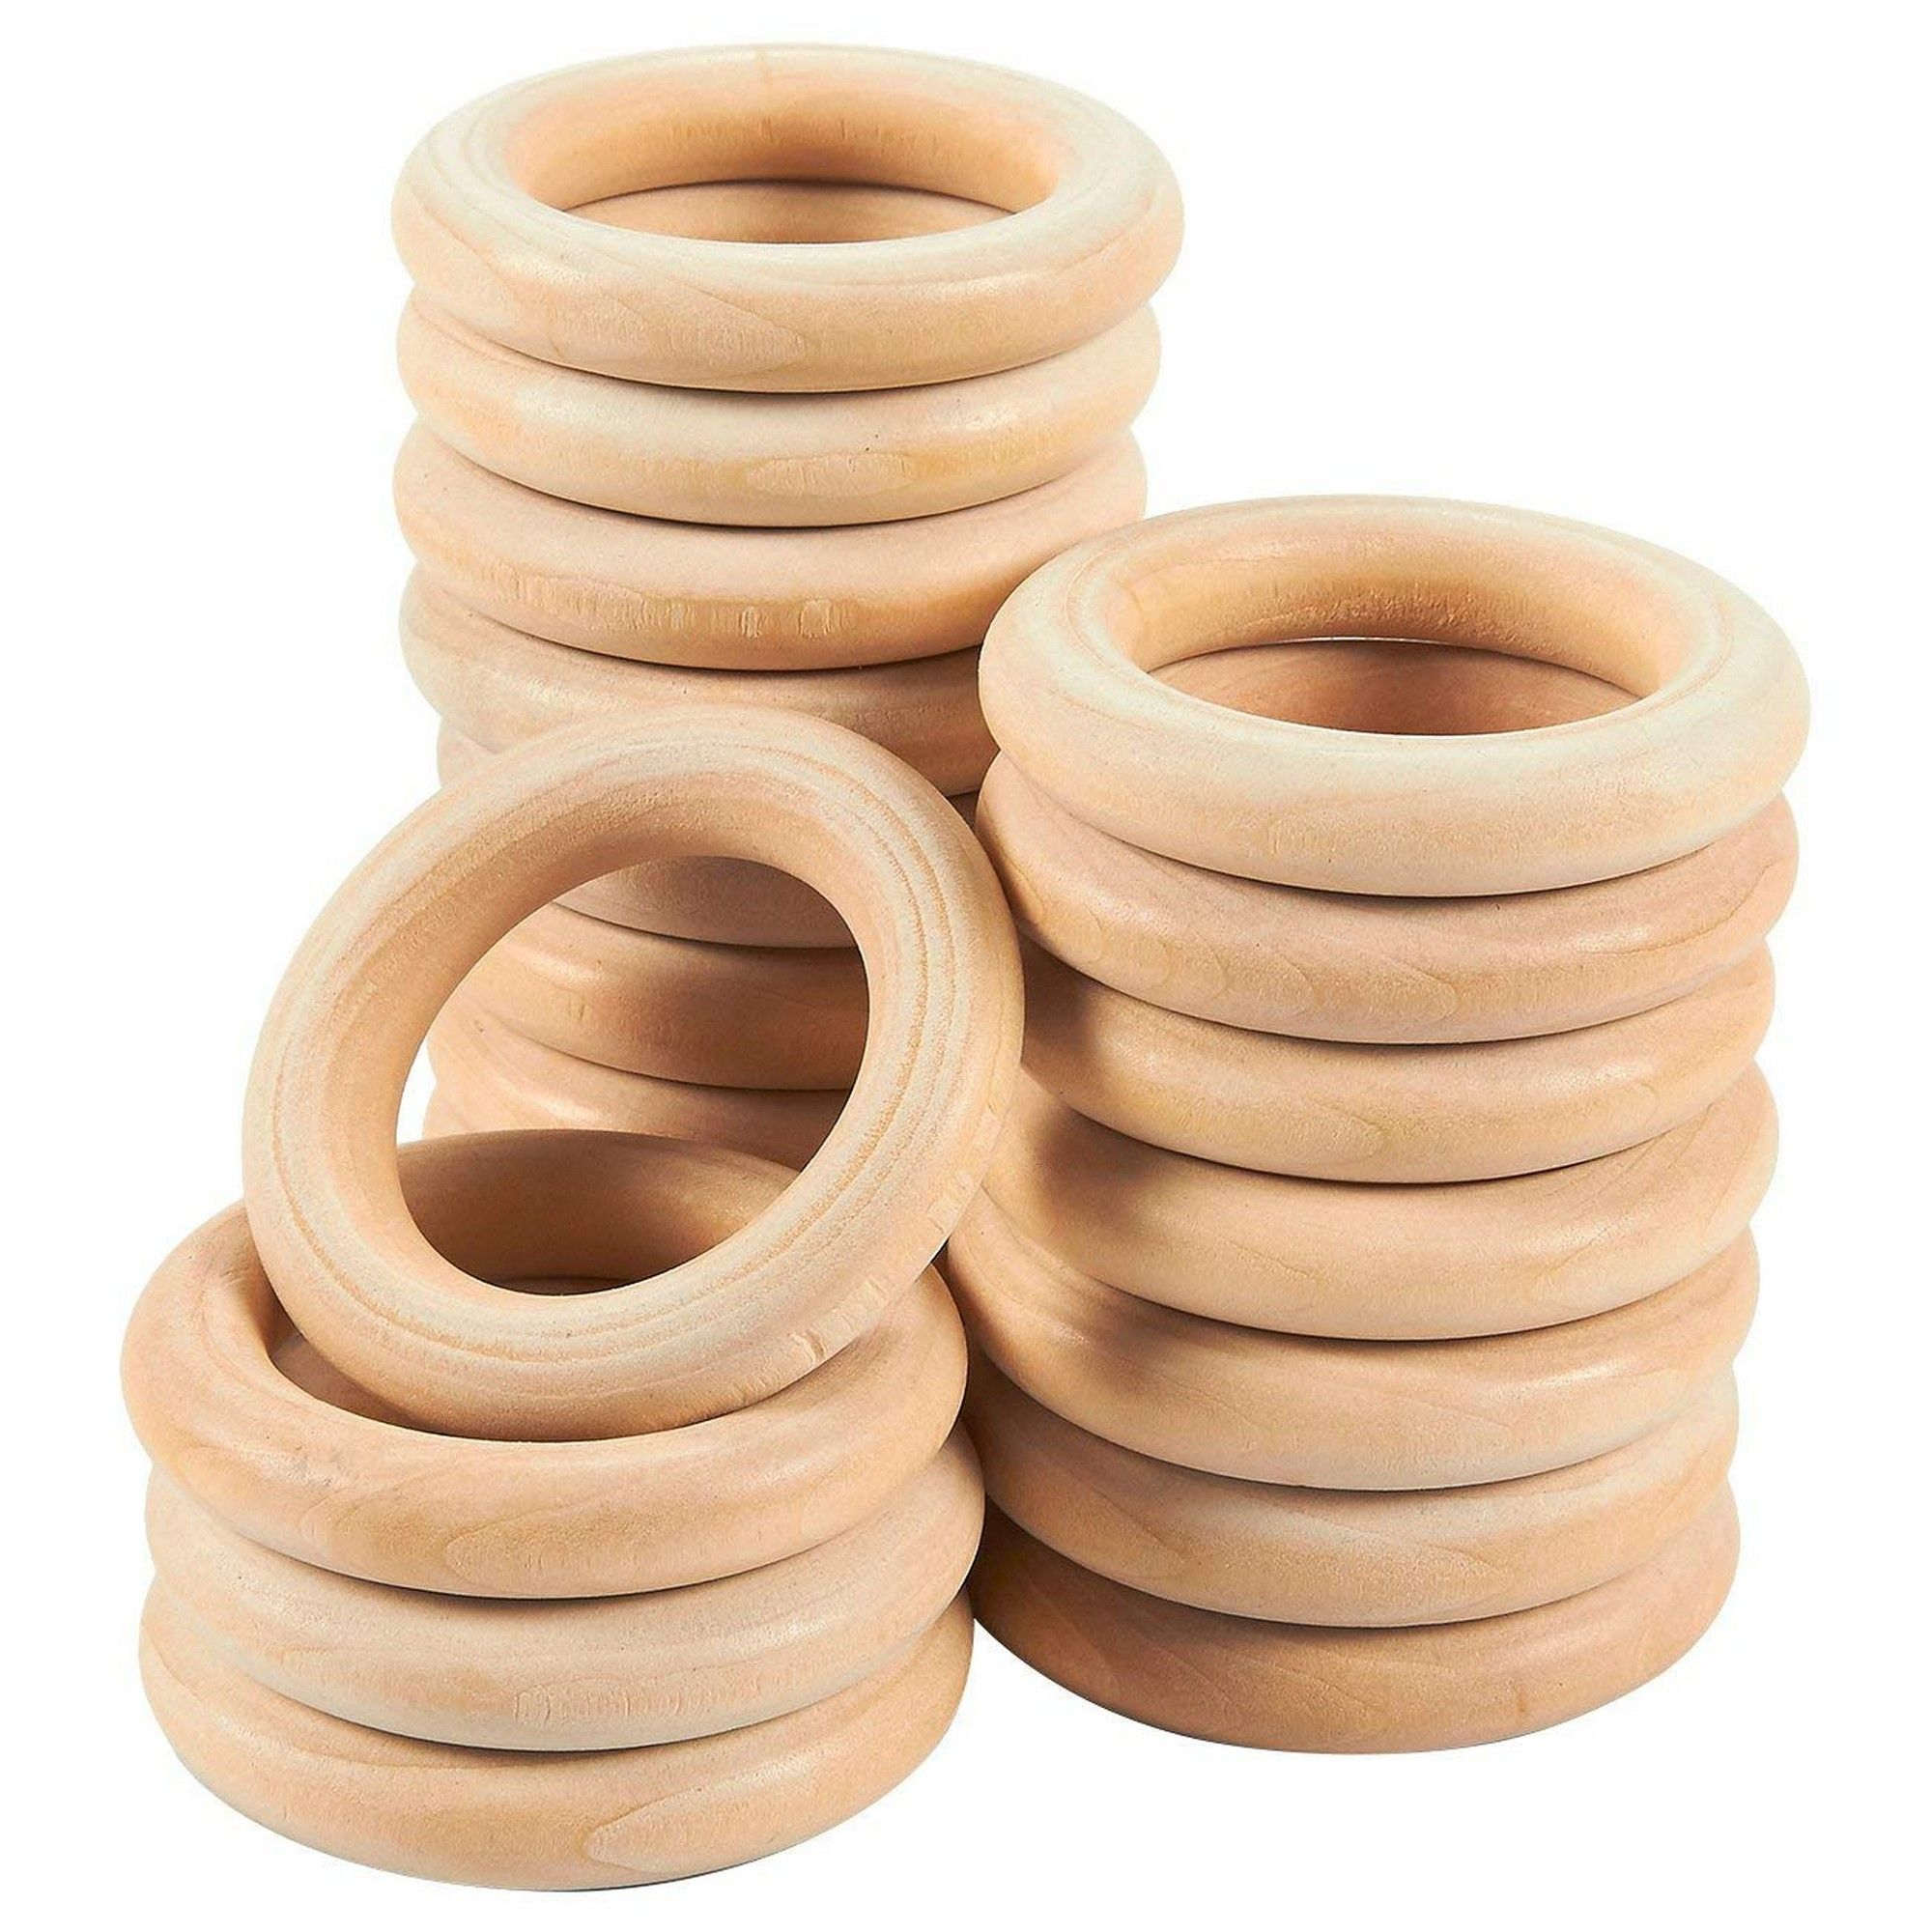 Wood Rings For Crafts